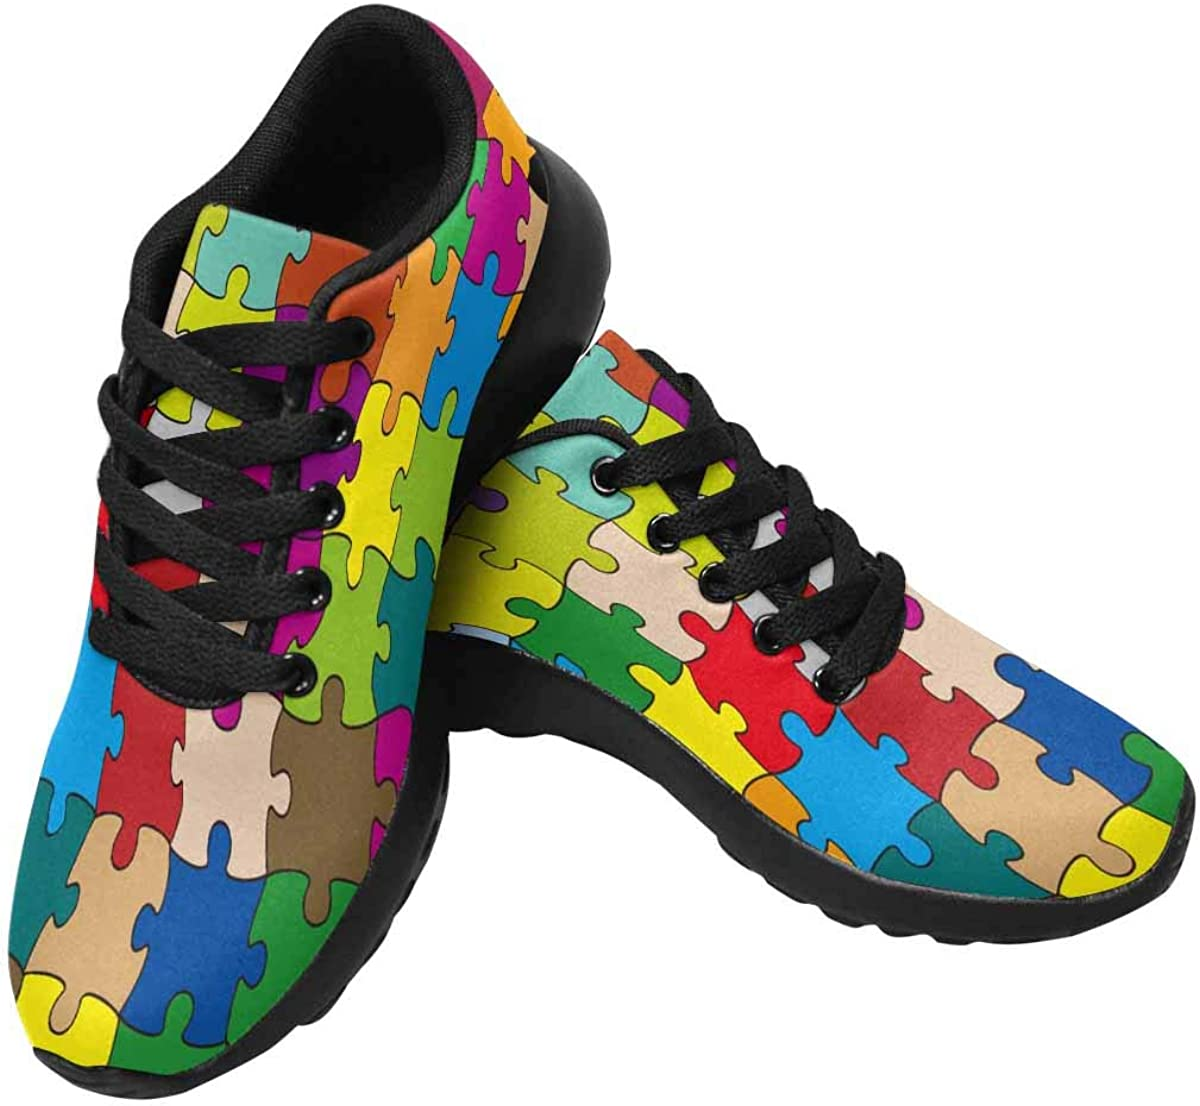 InterestPrint Womens Jogging Sneakers Outdoor Sport Cross Training Shoes 64 Pieces Puzzle